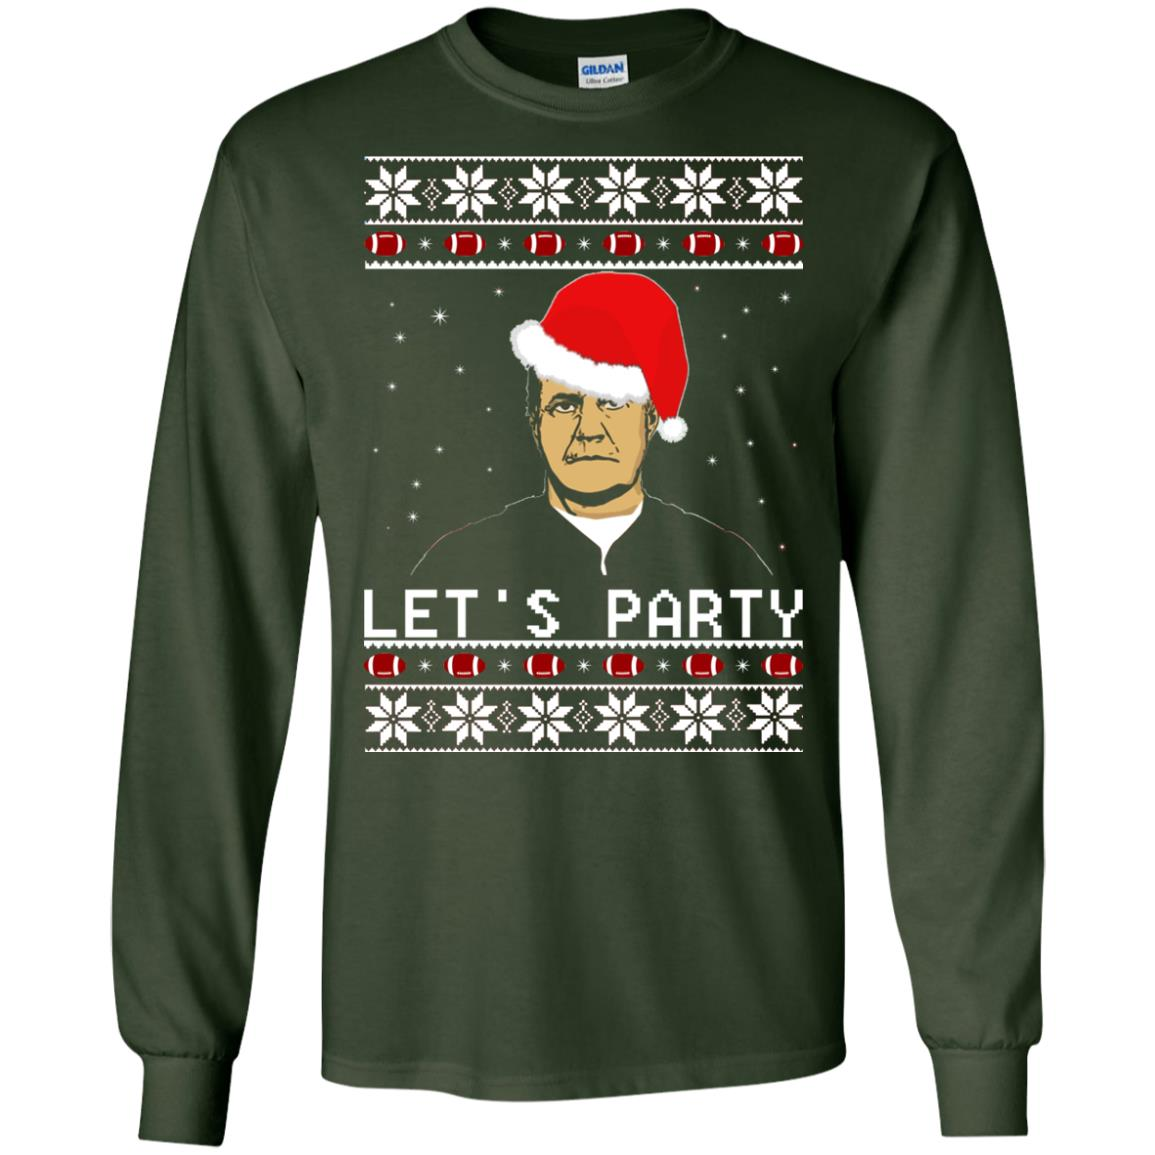 image 126 - Belichick Let's Party ugly sweater, hoodie, long sleeve